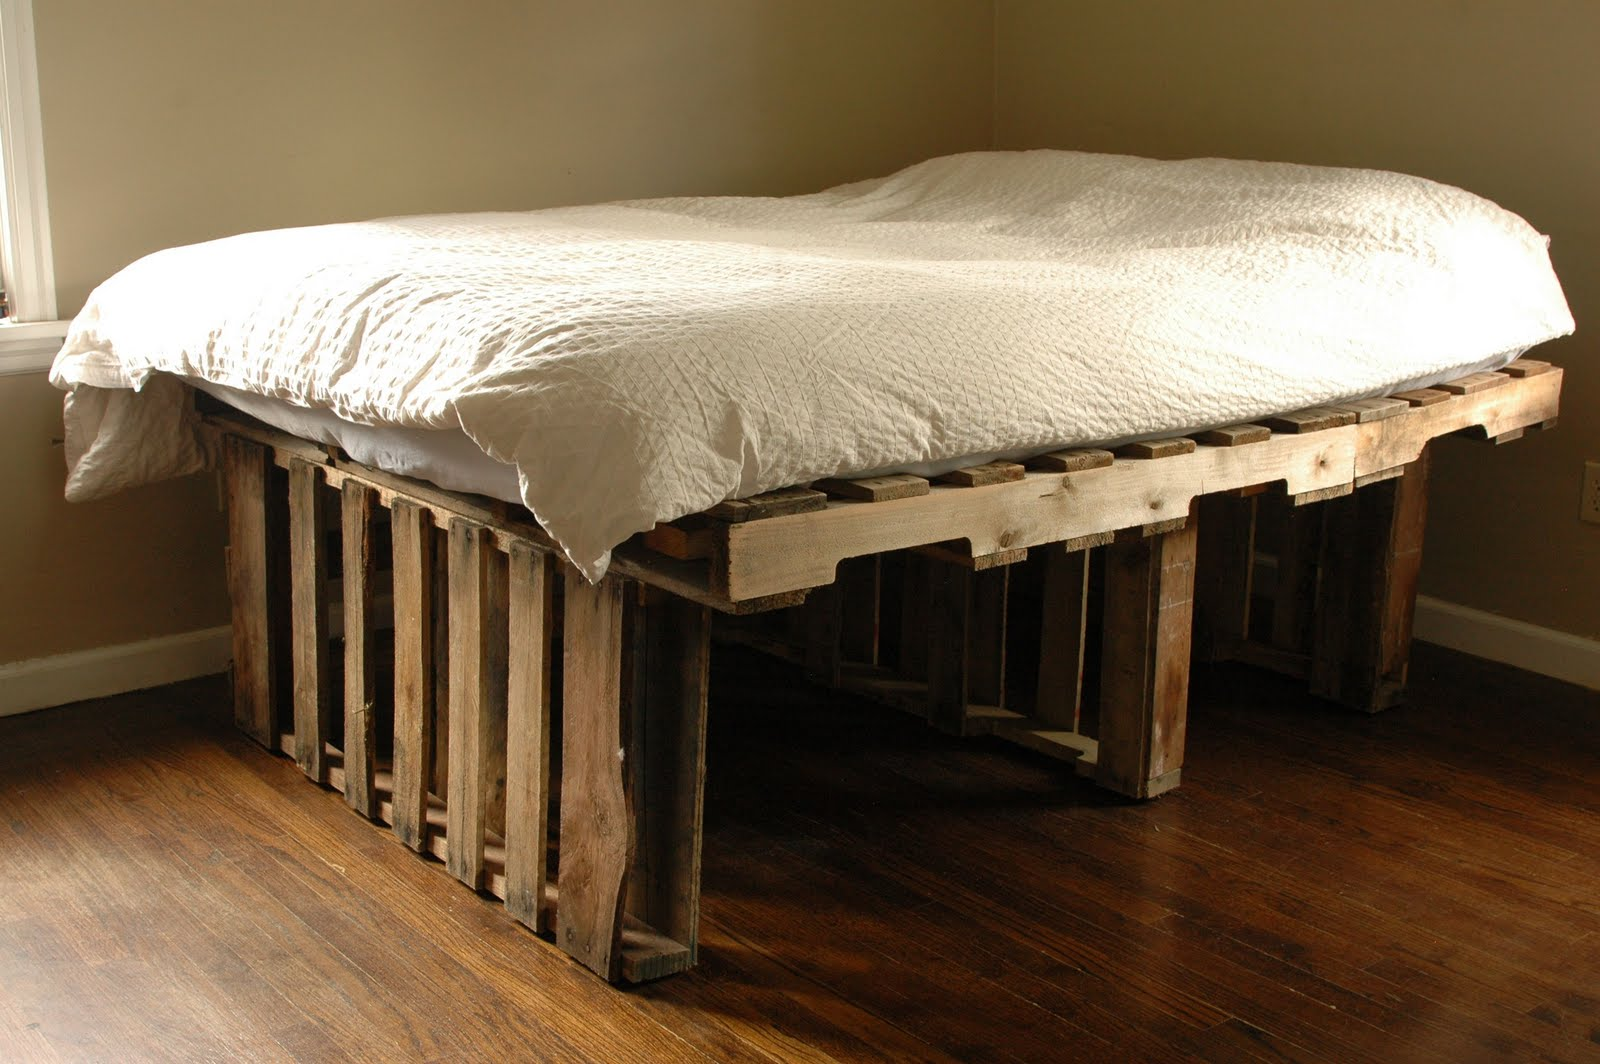 Furniture Gang 6hr Pallet Bed